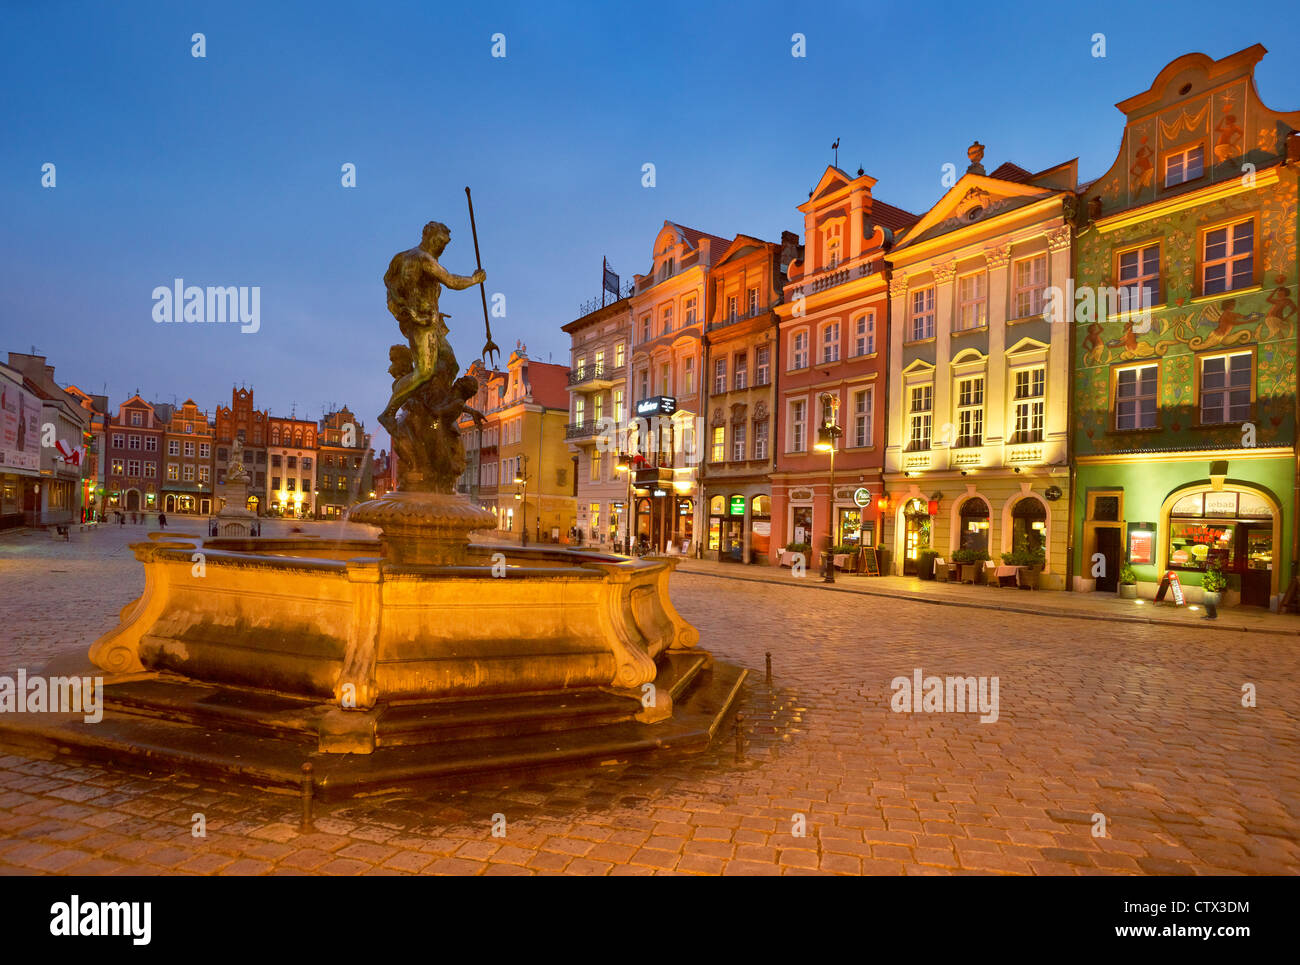 Poznan, The Old Market Square, Poland, Europe - Stock Image